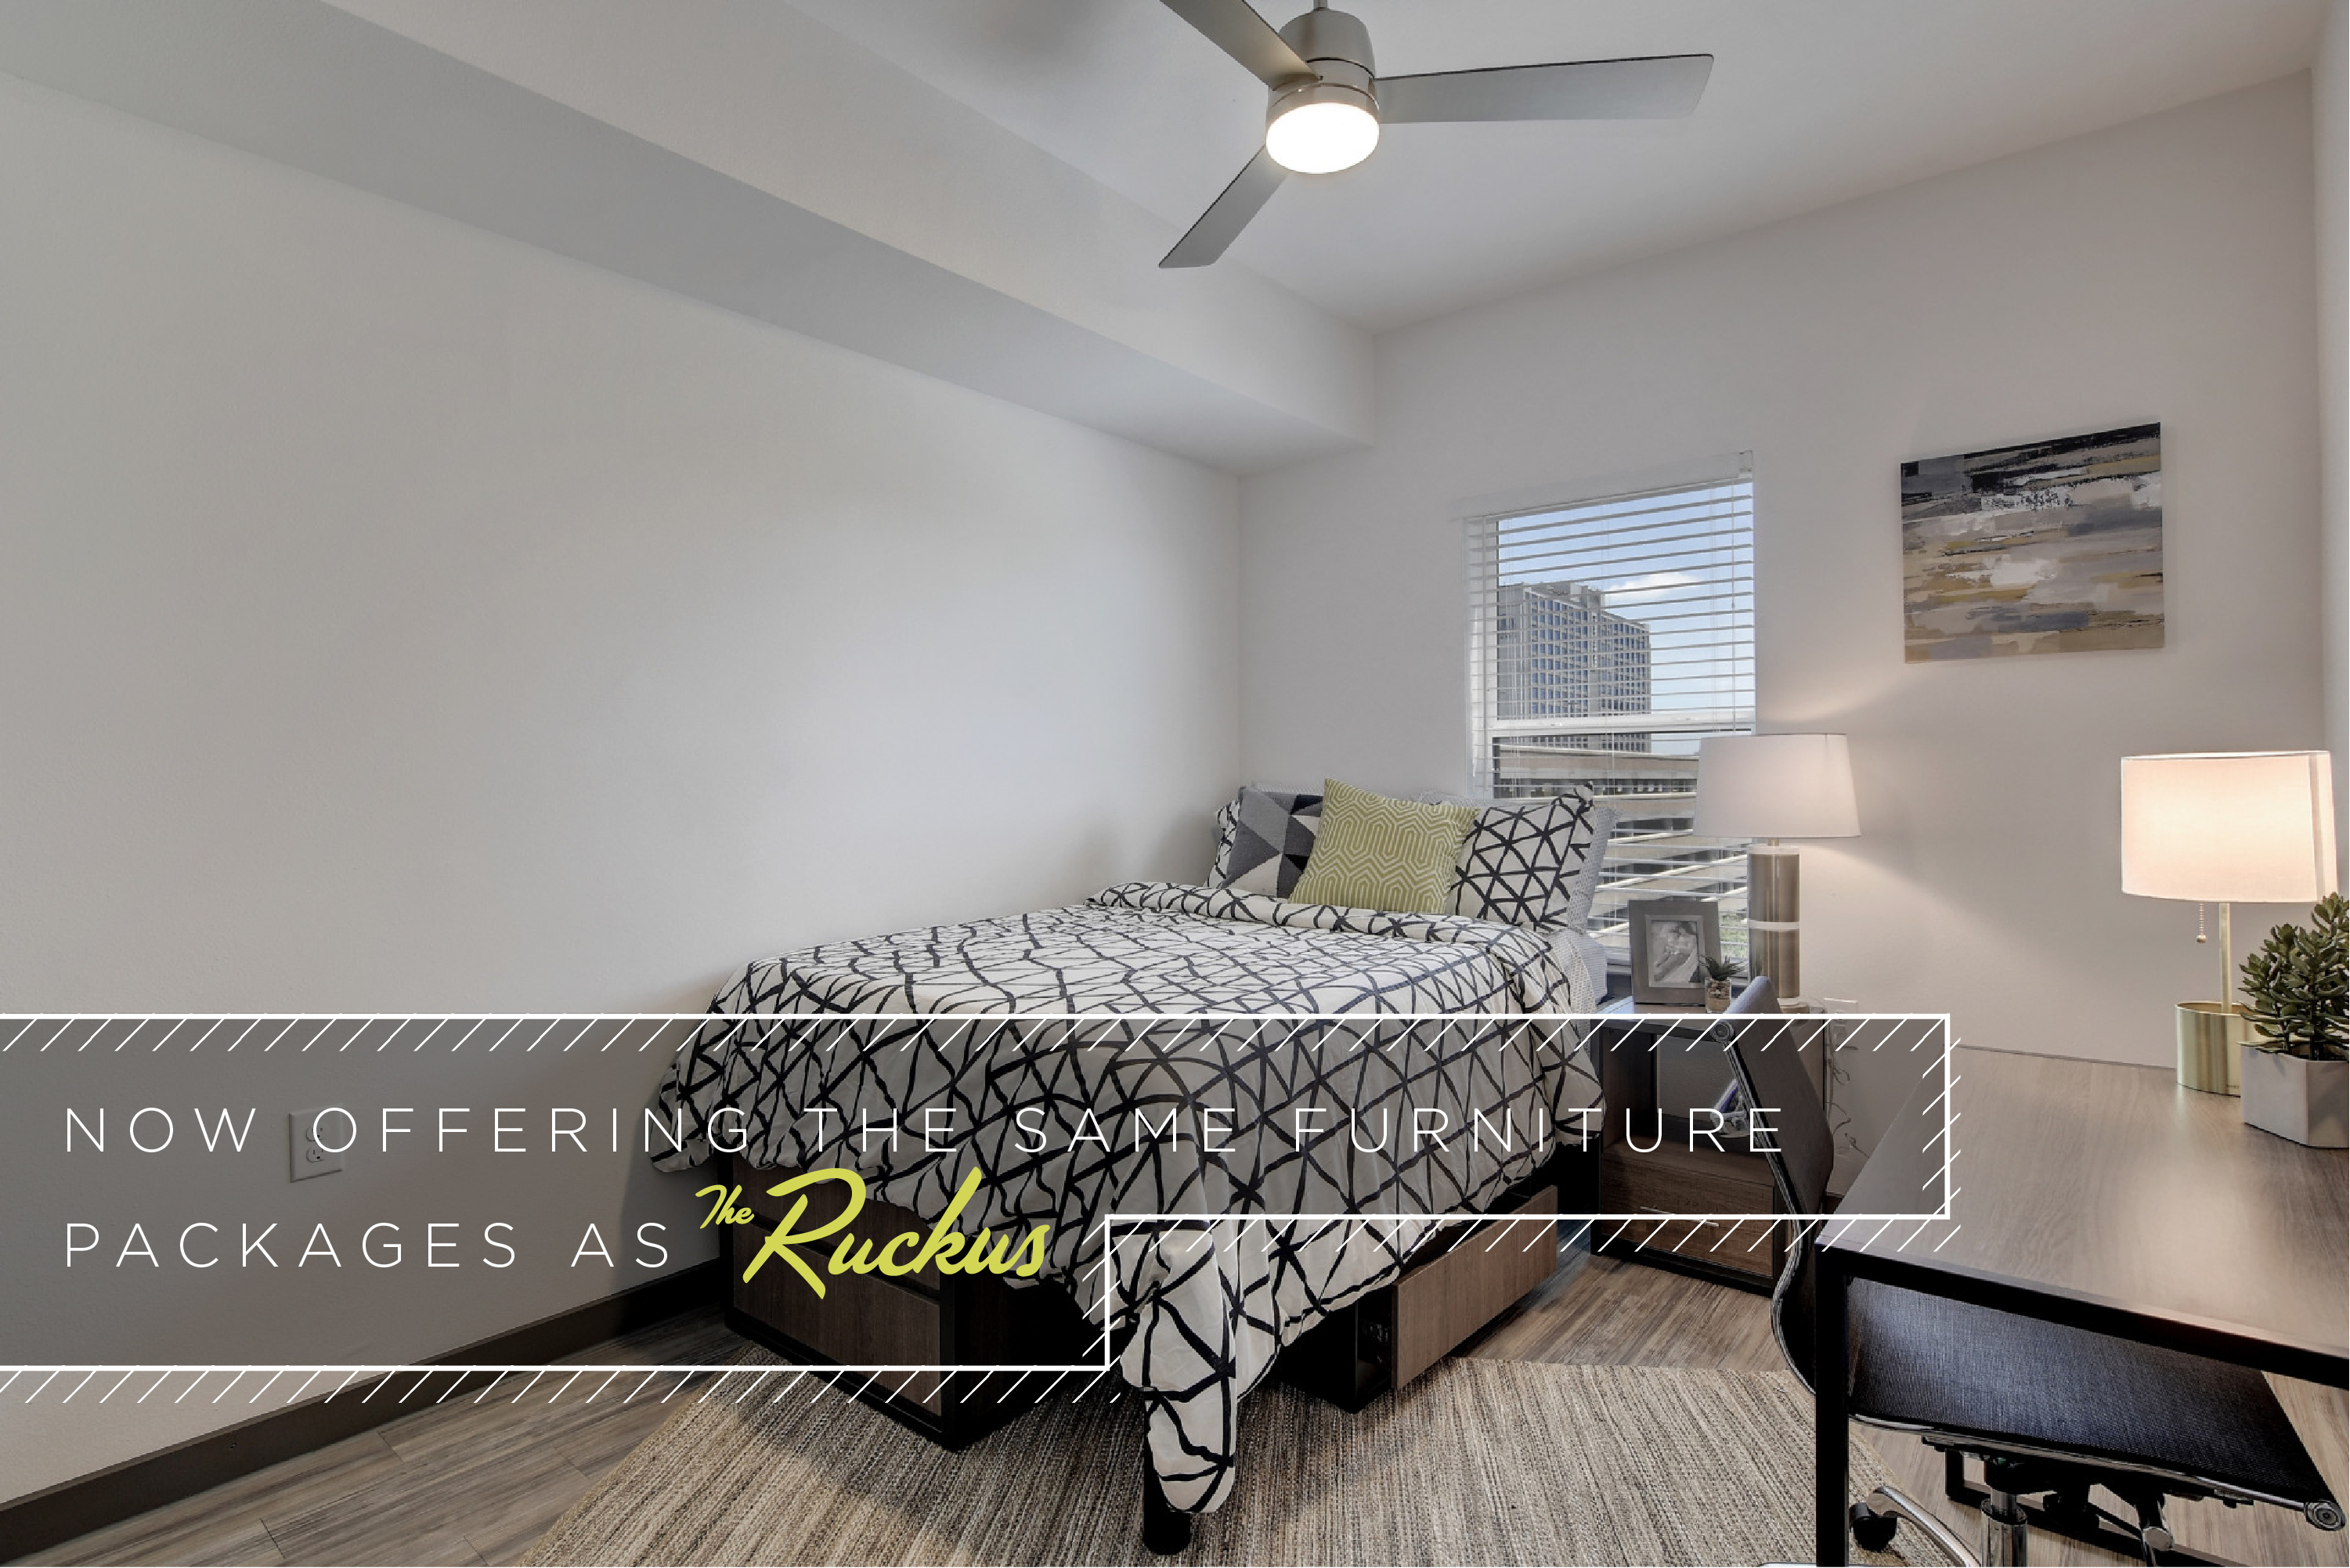 The Ruckus_New Furniture Package_11.26.18-04